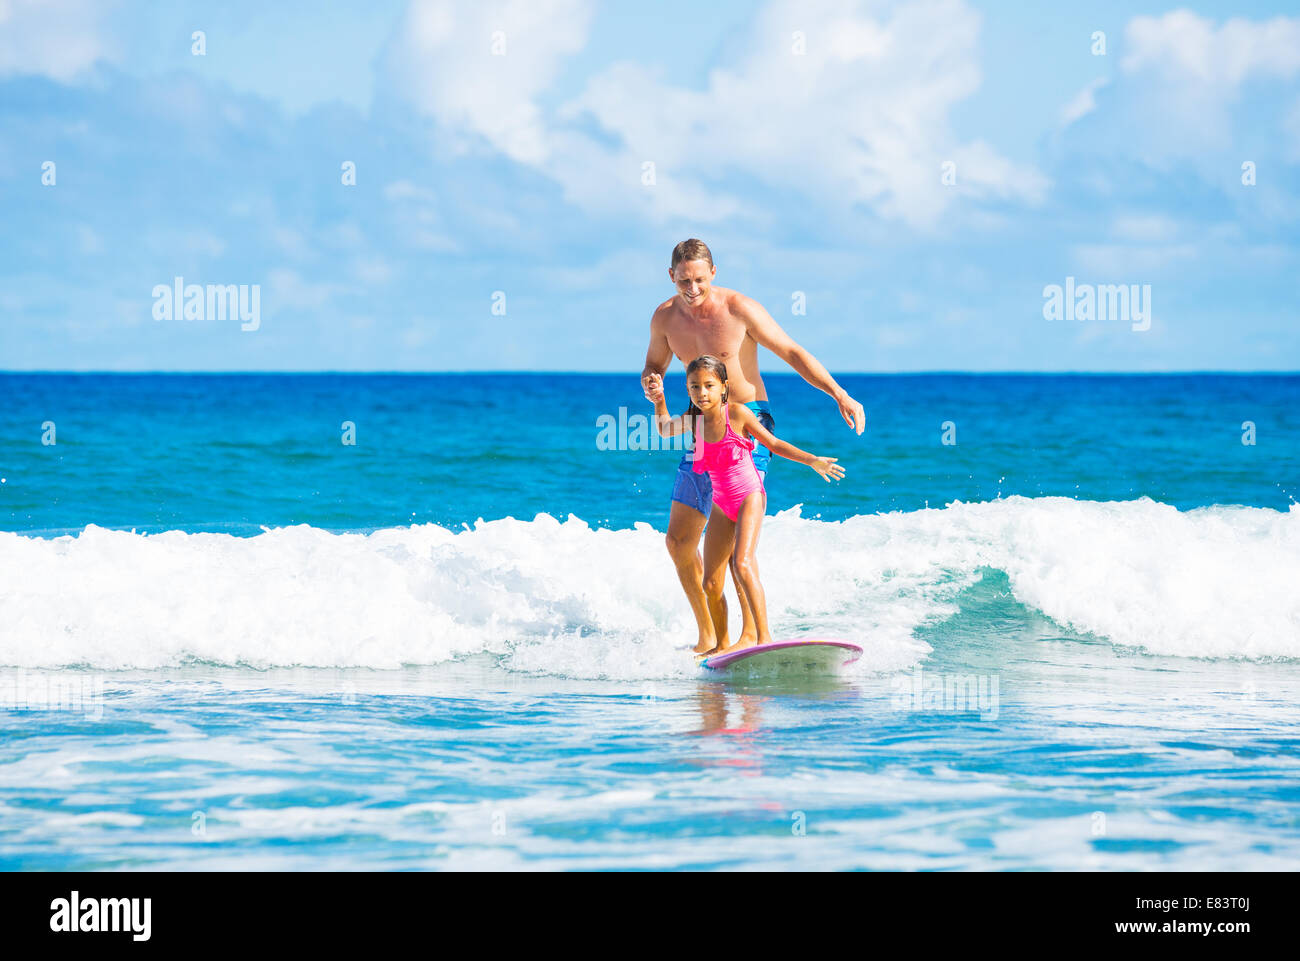 Father and Daughter Surfing Together Catching Wave, Summer Lifestyle Family Concept - Stock Image